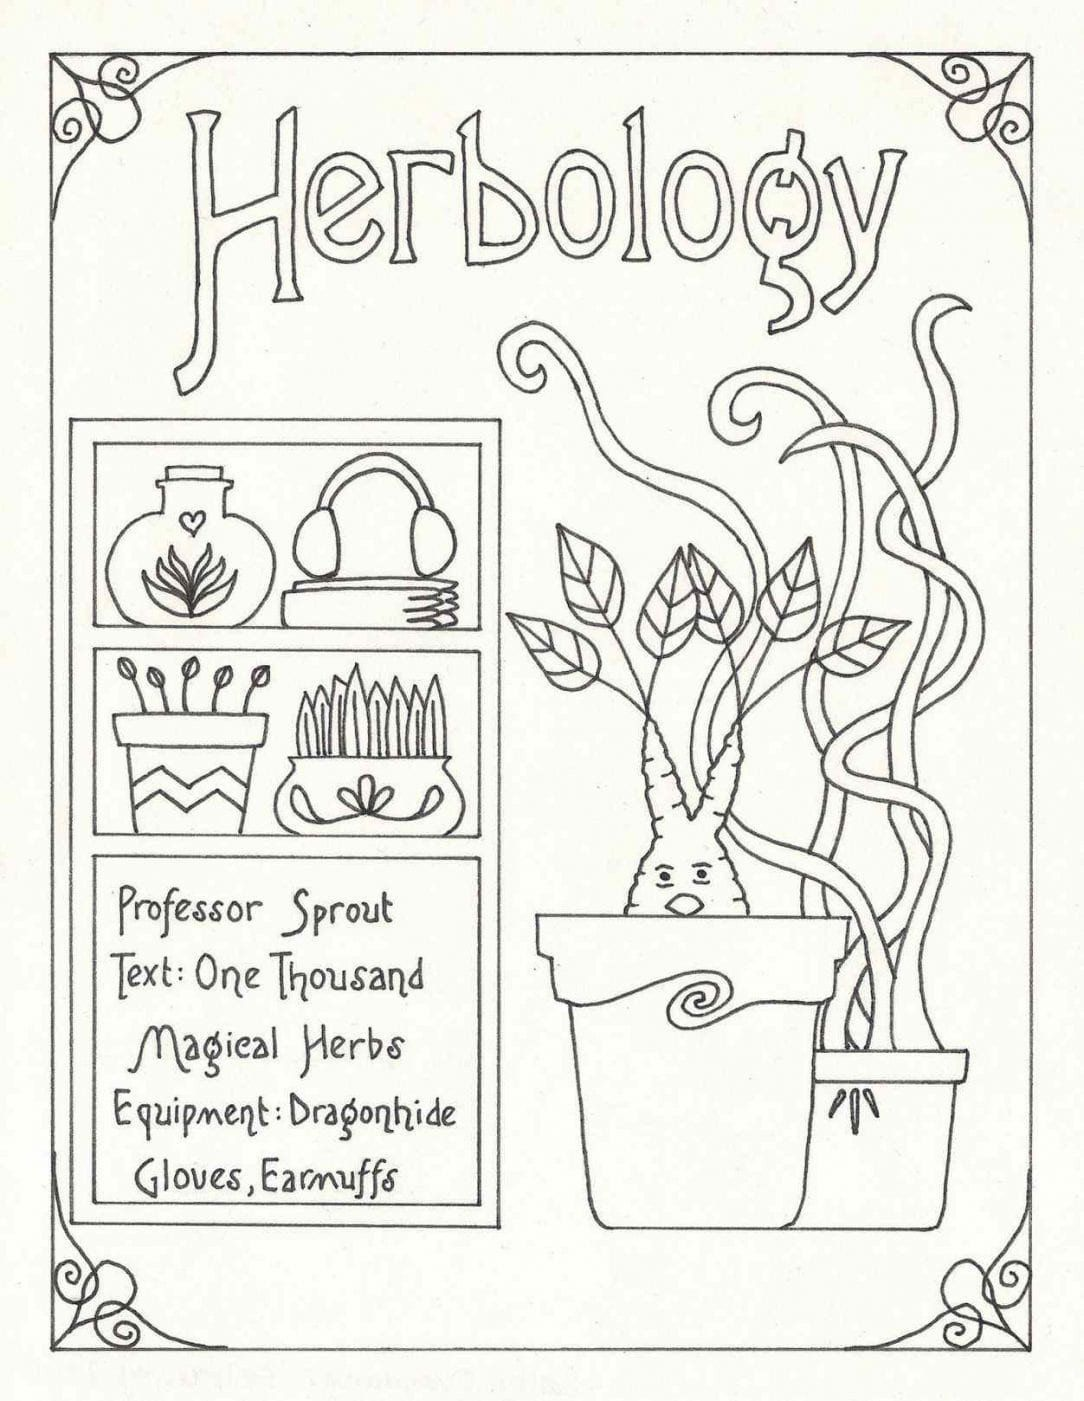 Harry Potter Coloring Pages Inspirational Harry Potter Coloring Pages Lego To Print Harry Potter Colors Harry Potter Coloring Pages Harry Potter Coloring Book